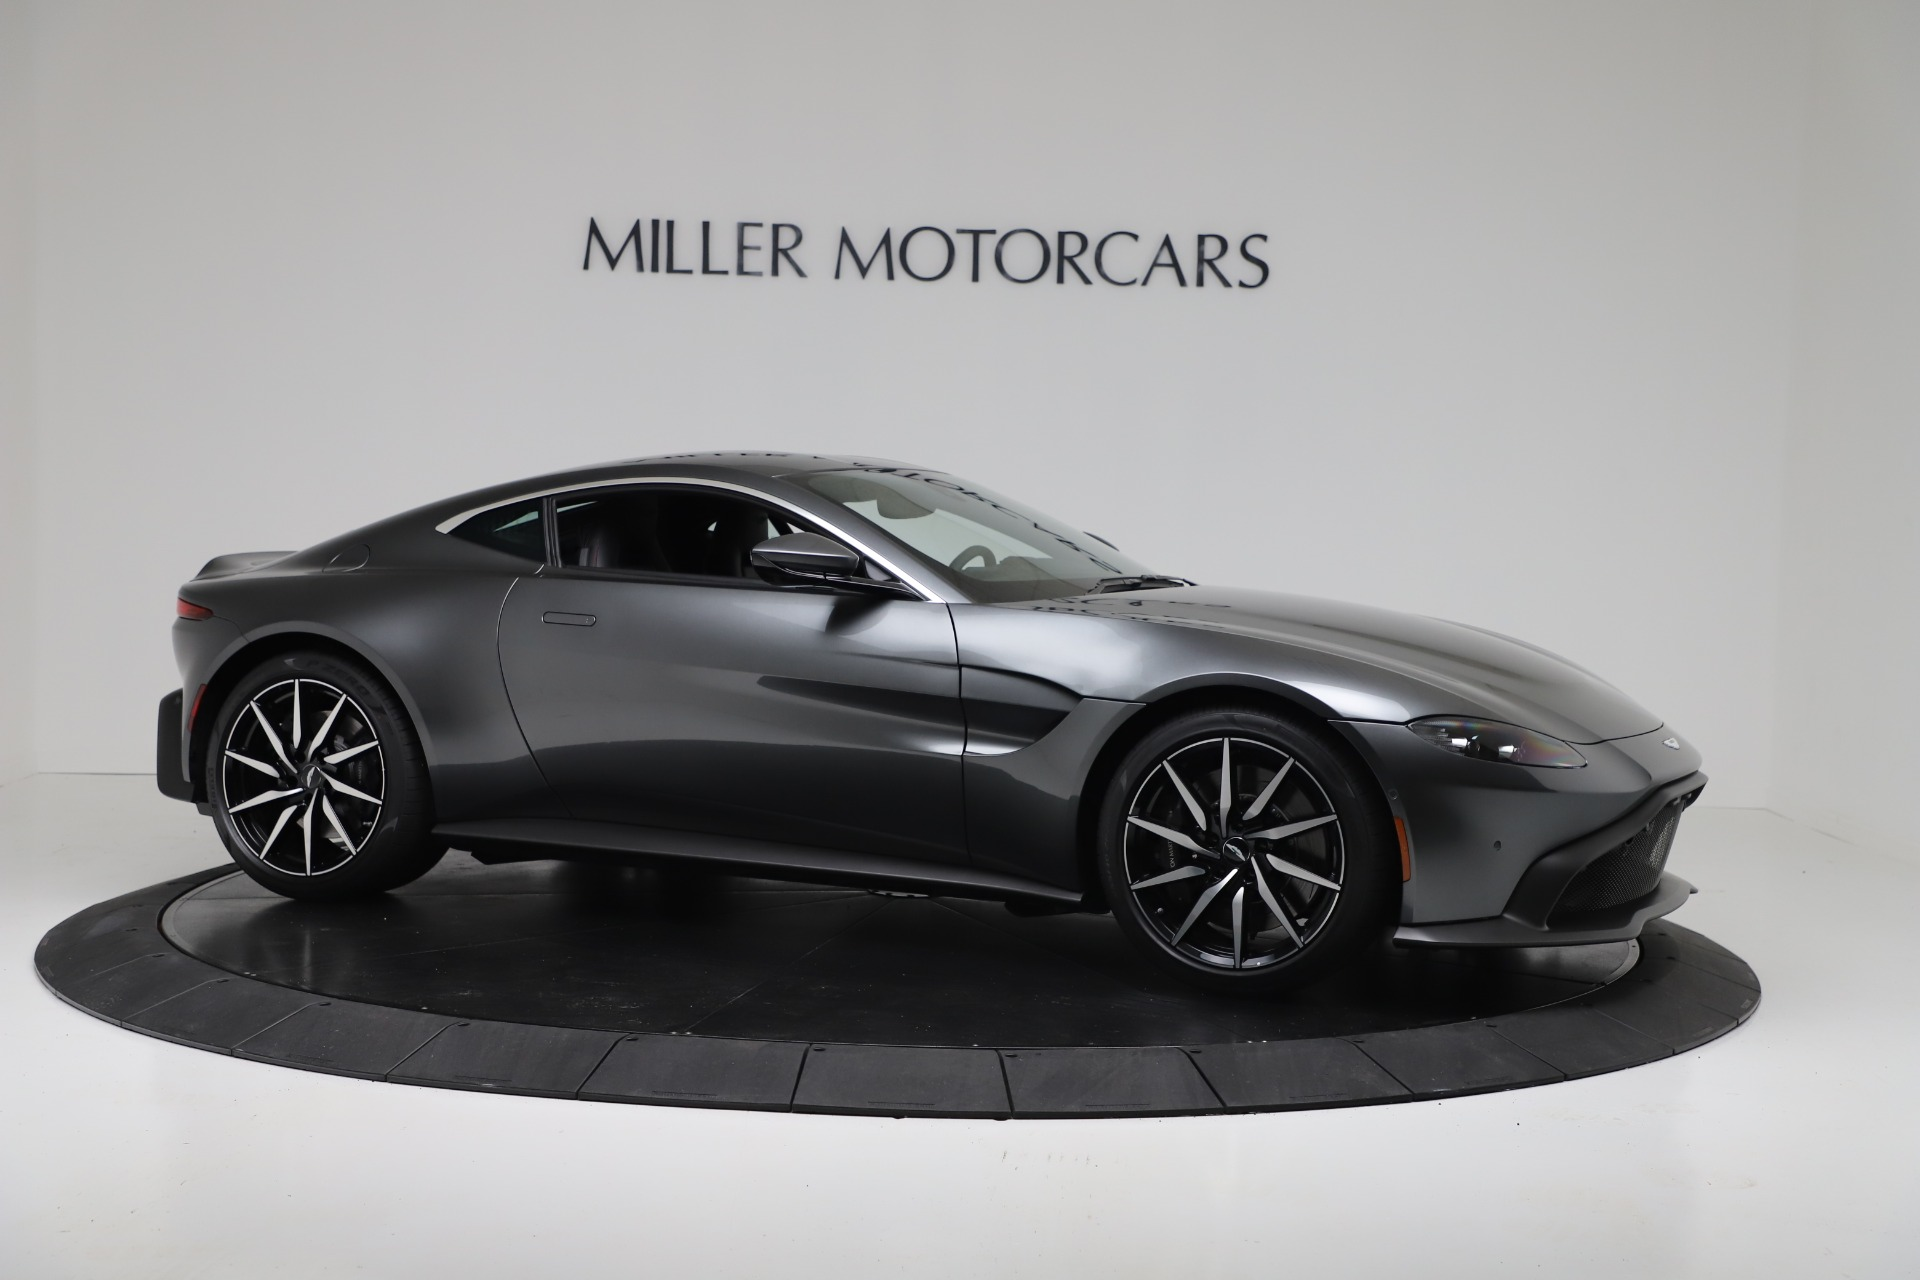 New 2020 Aston Martin Vantage V8 For Sale In Greenwich, CT 3384_p8